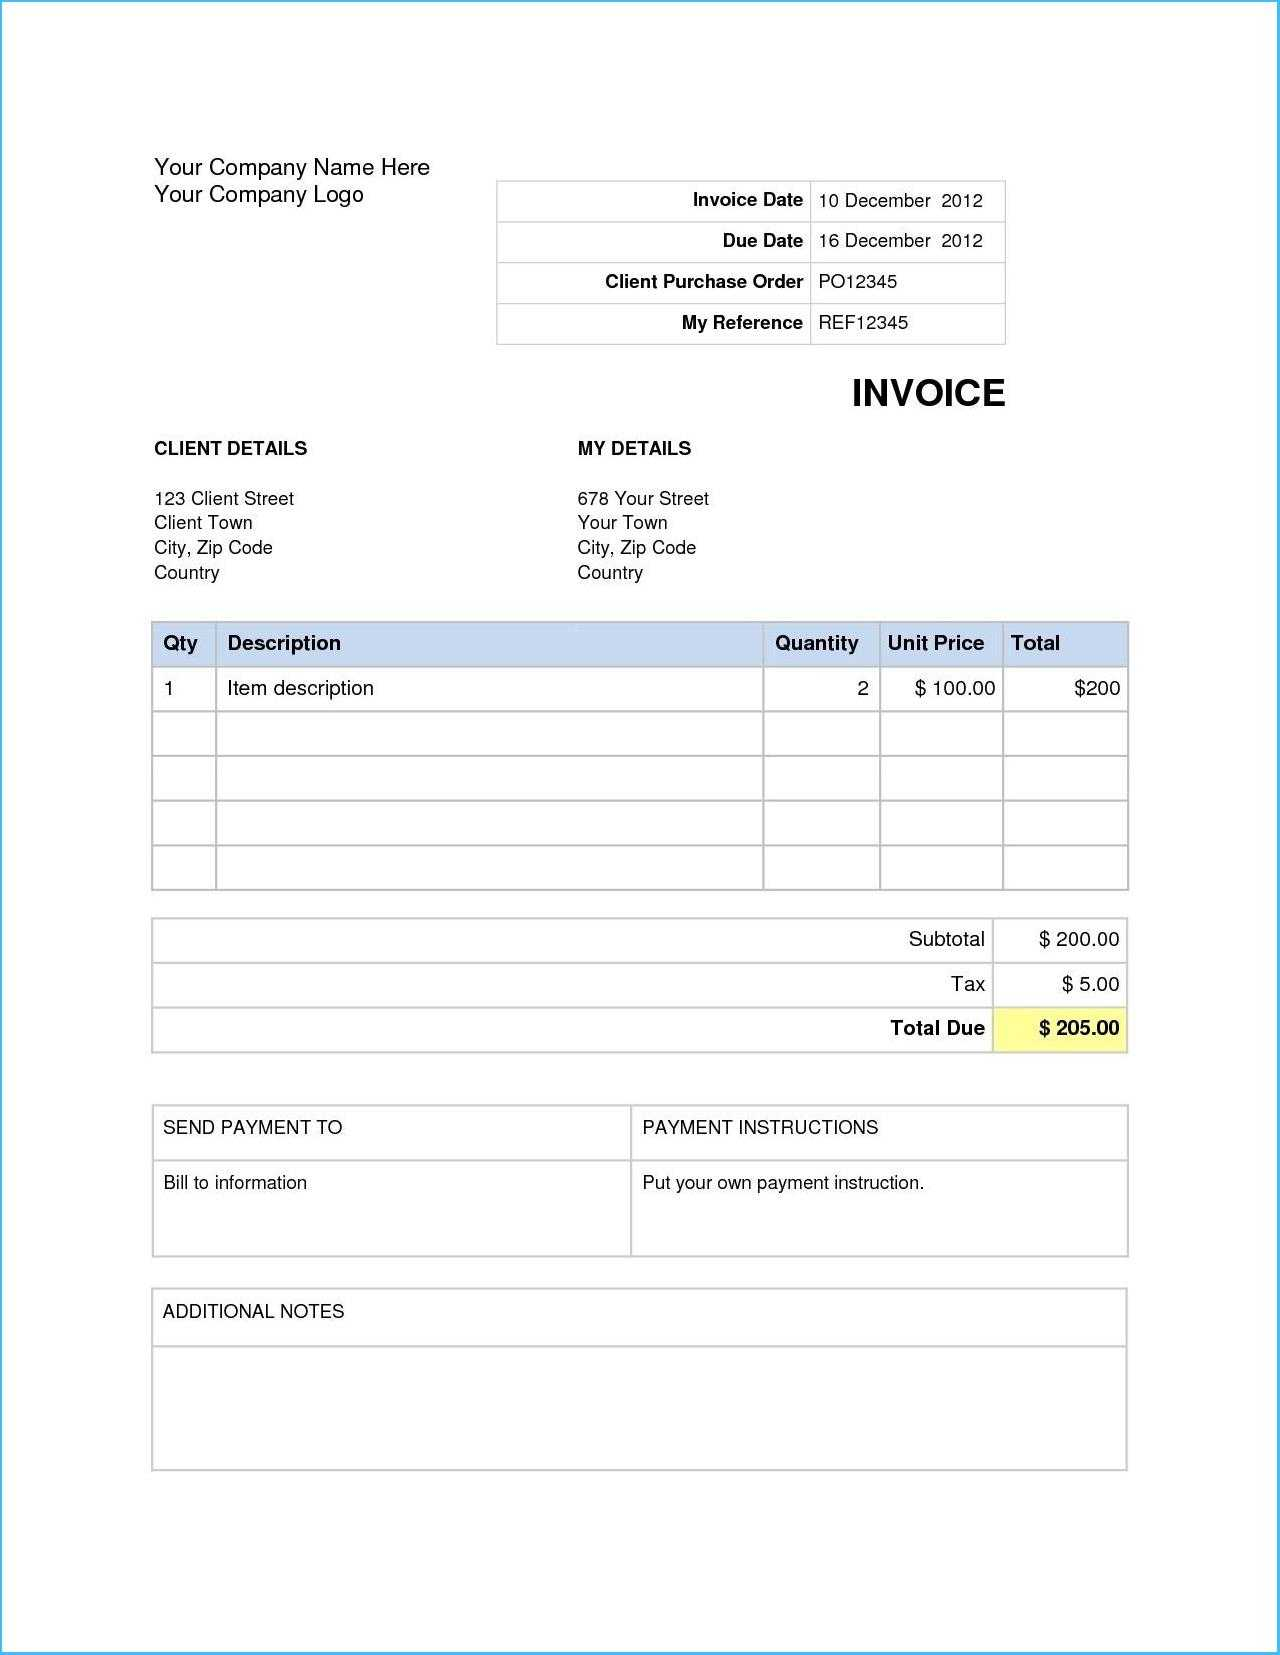 027 Word Invoice Min Template For Awful Ideas Free Uk with regard to Invoice Template Word 2010